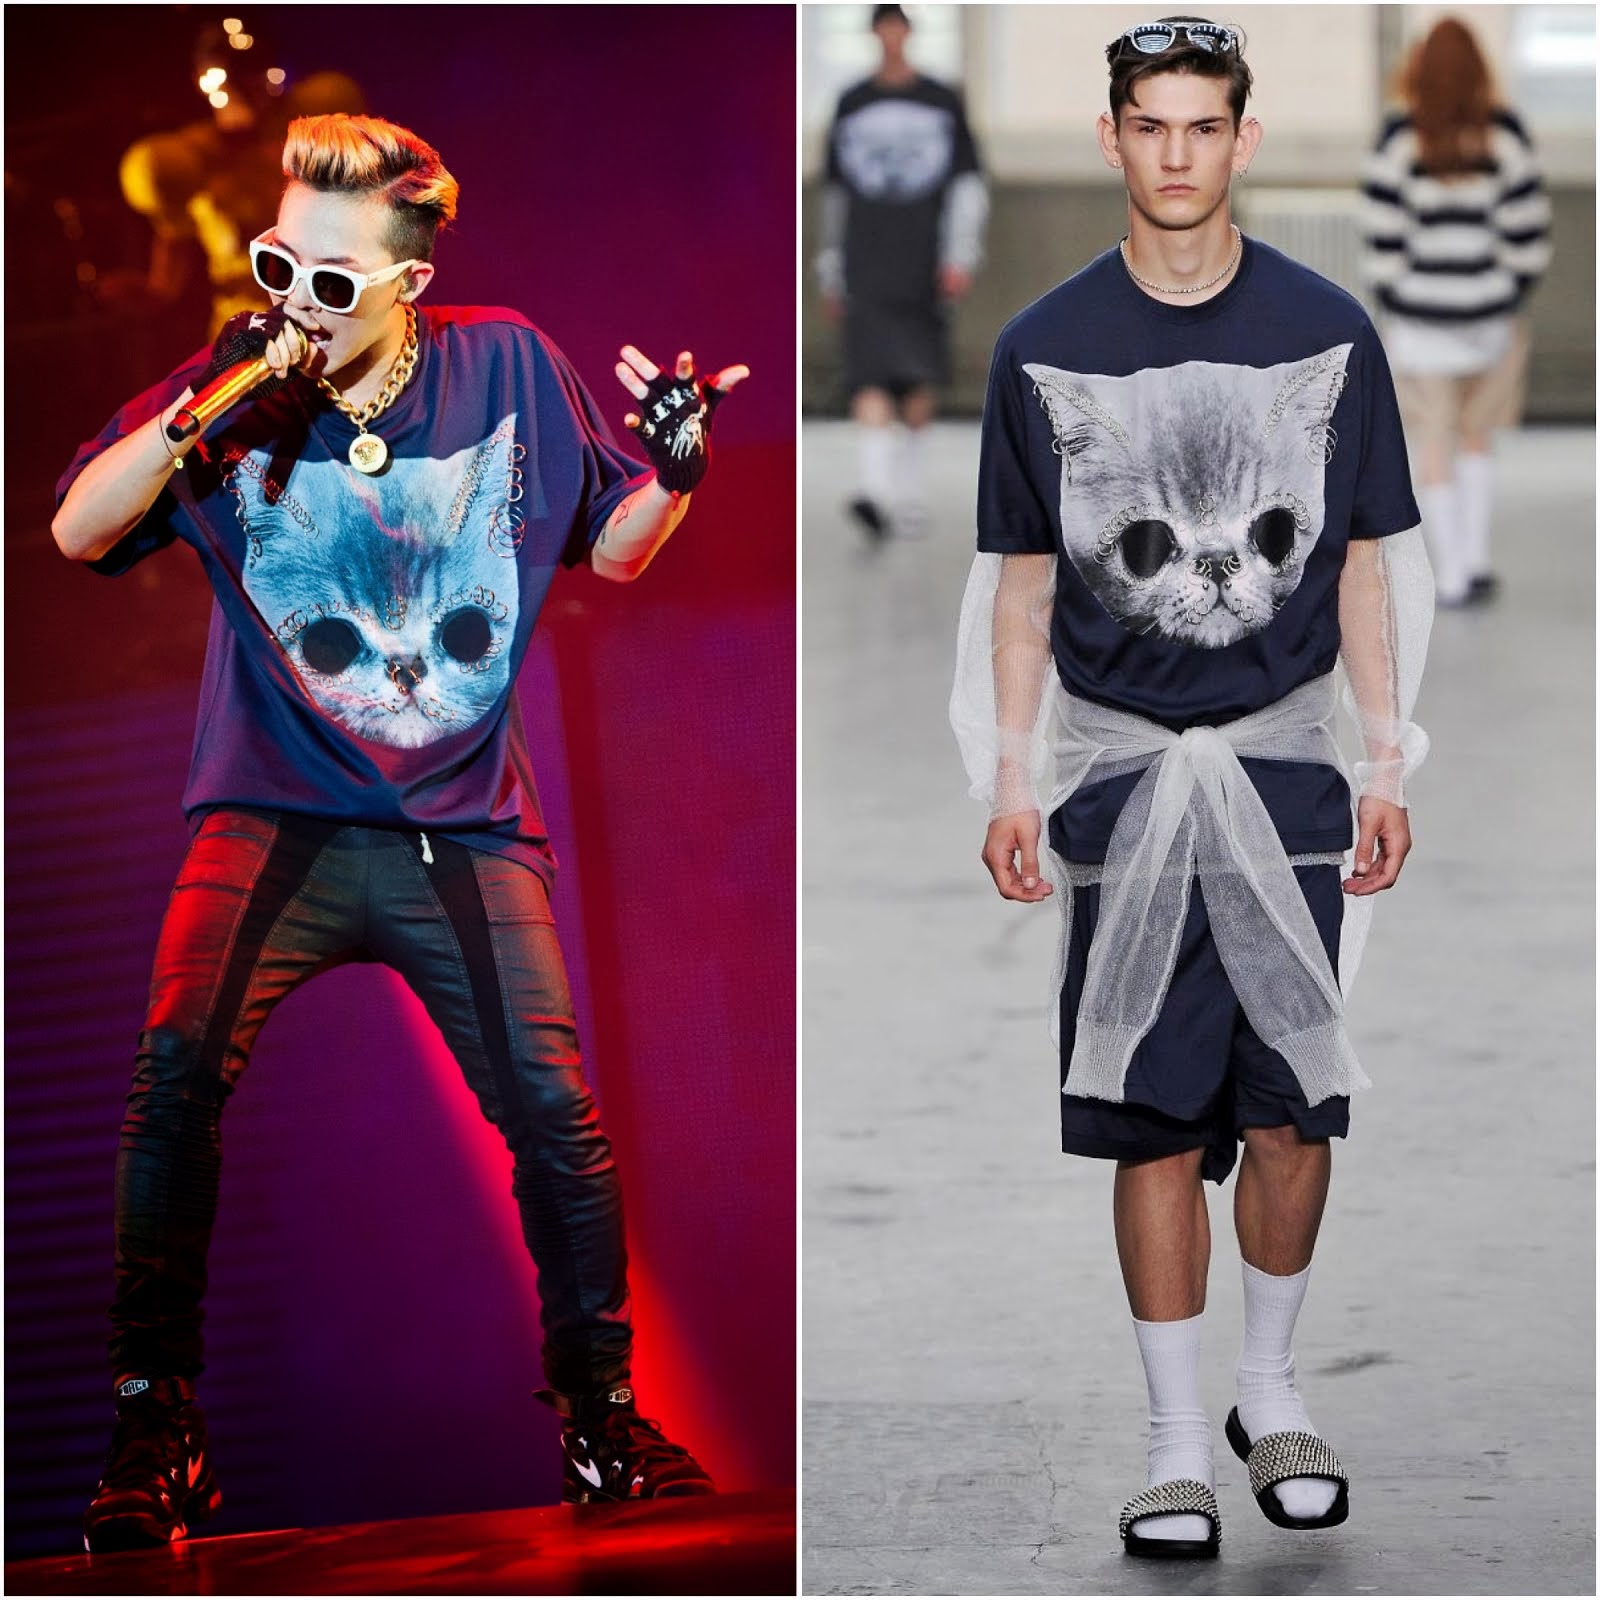 00O00 Menswear Blog: G-Dragon in Shaun Samson - 2013 World Tour, Malaysia